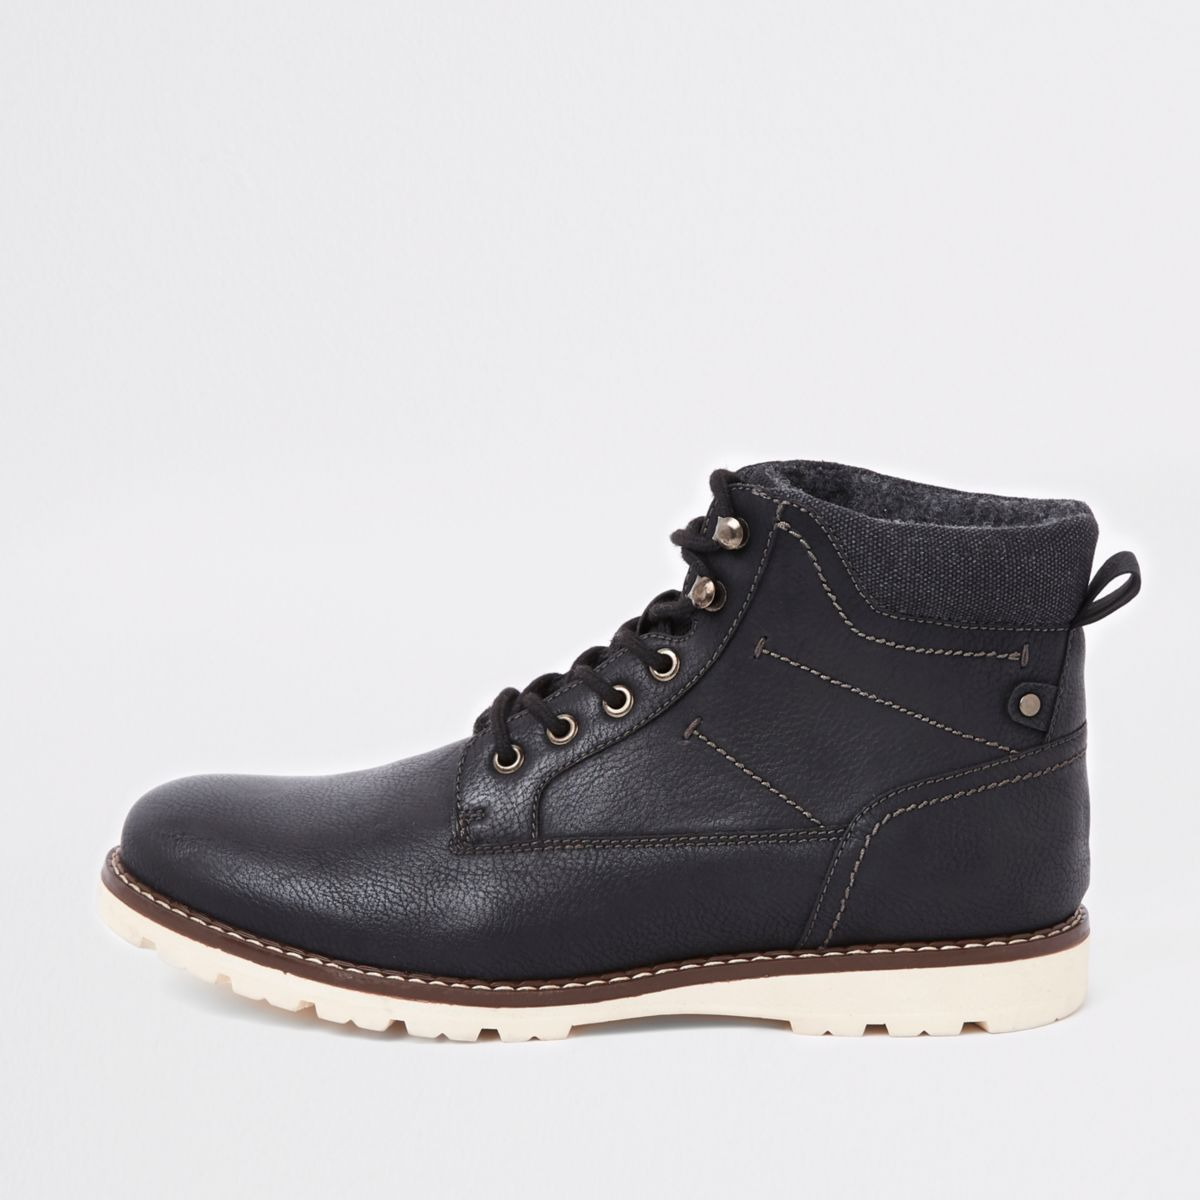 Black lace-up work boots